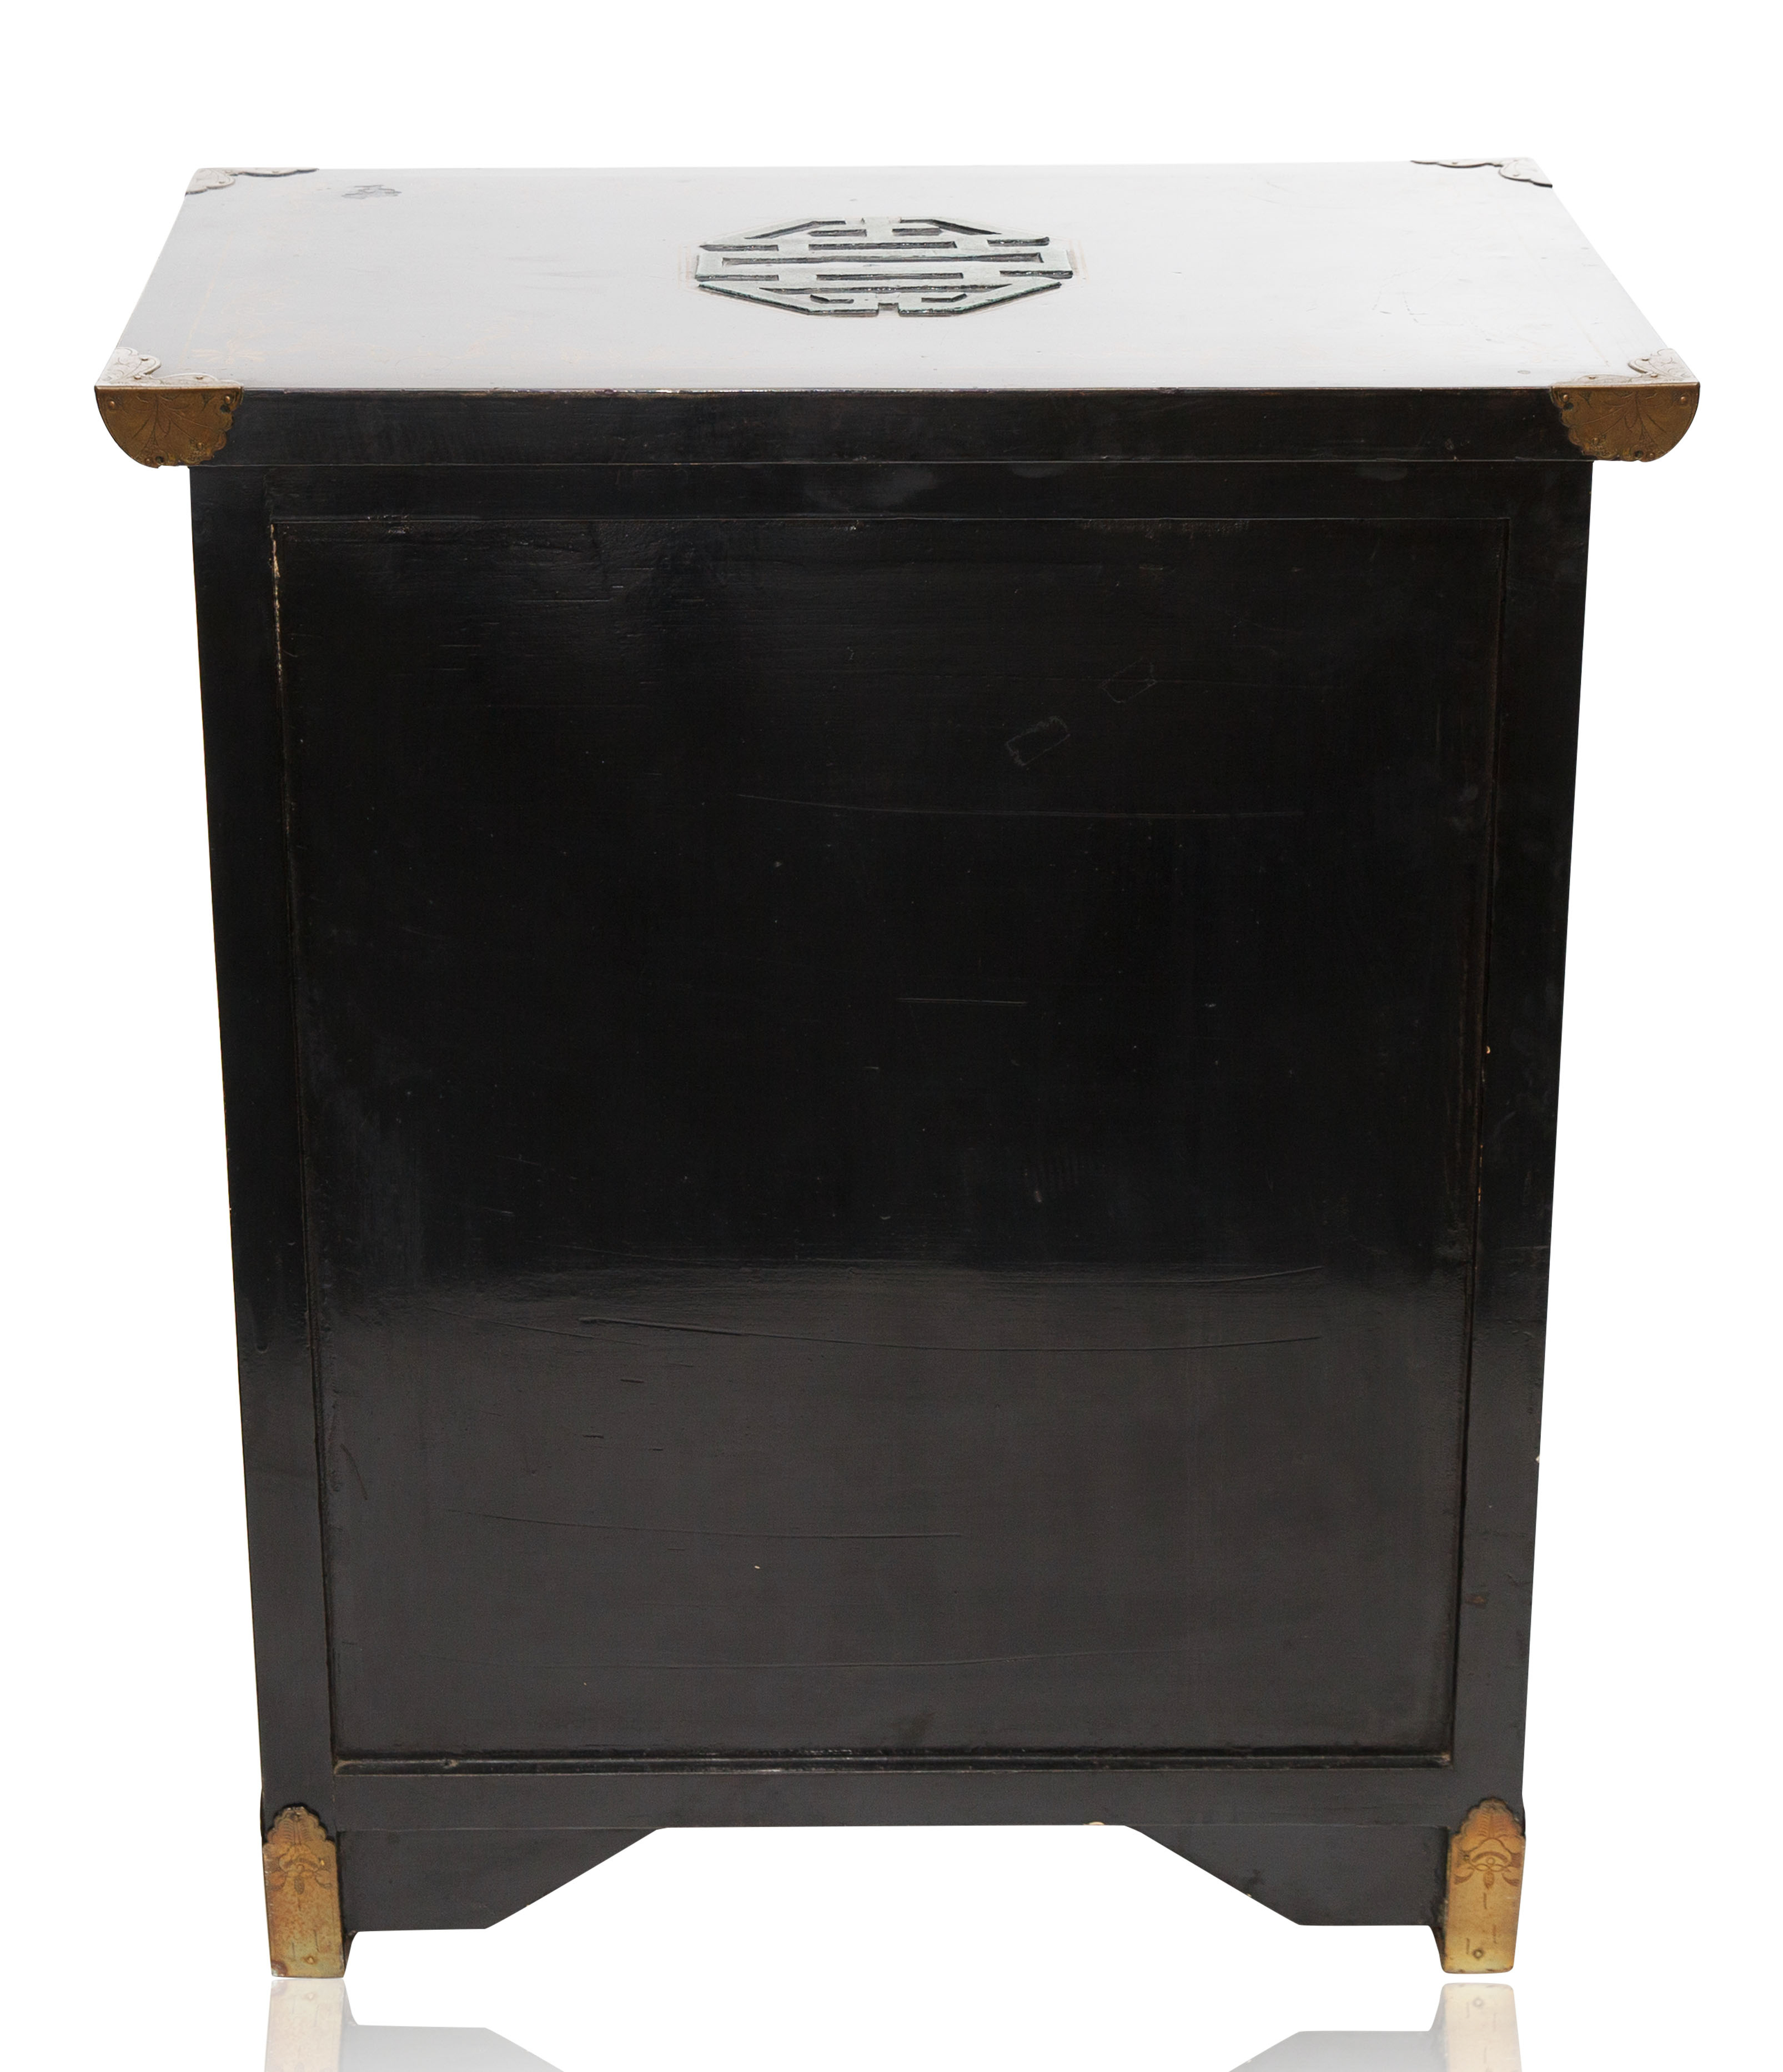 A MEIJI PERIOD JAPANESE EBONISED LACQUER CABINET - Image 4 of 4